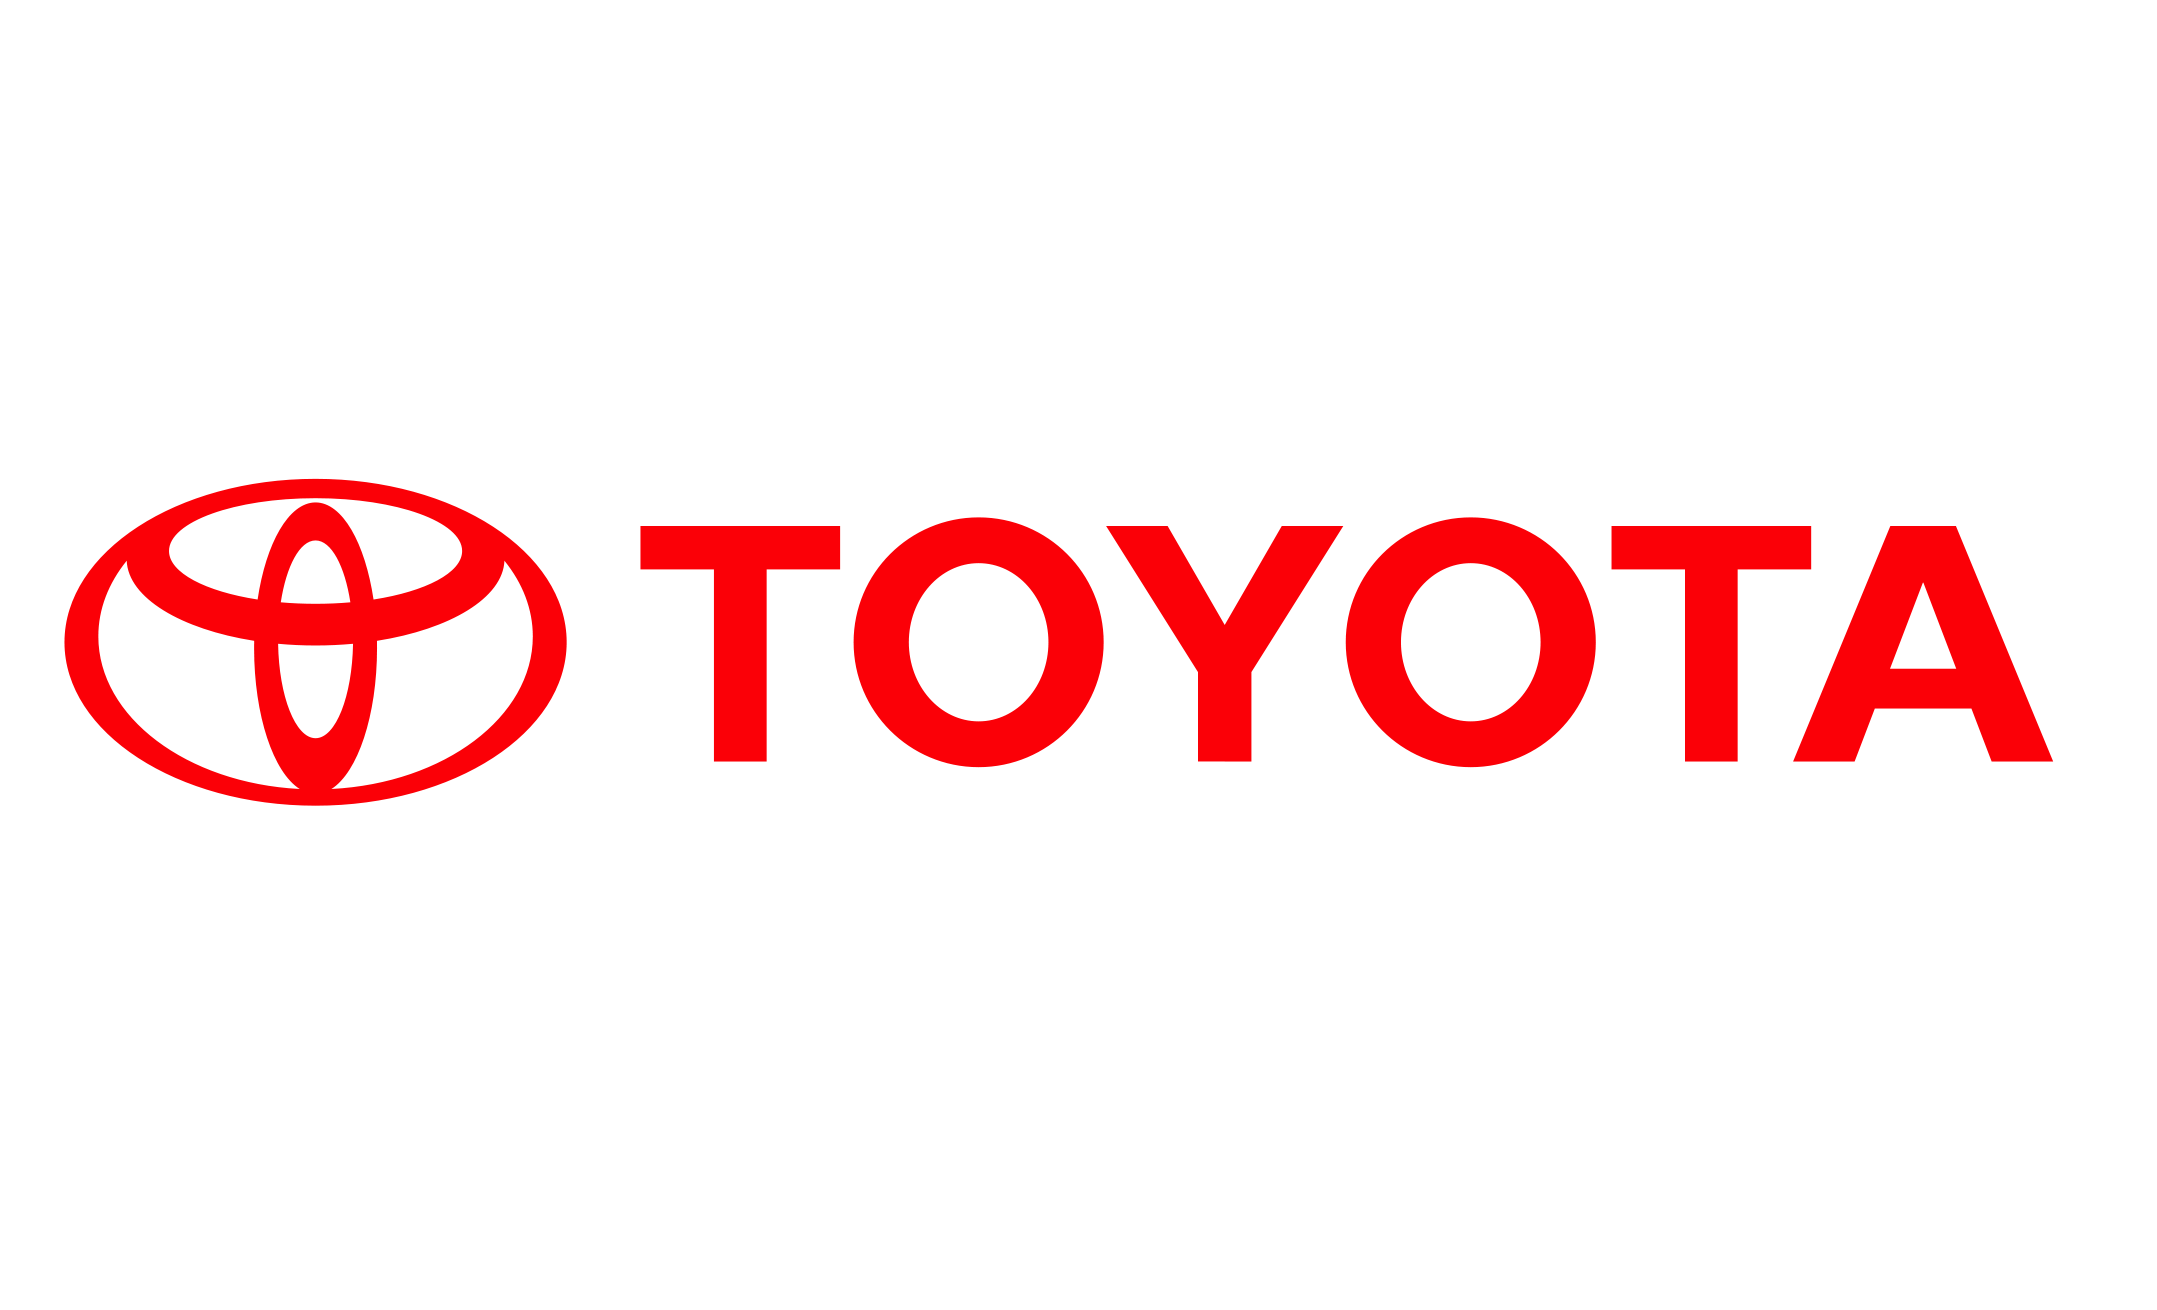 toyotapng